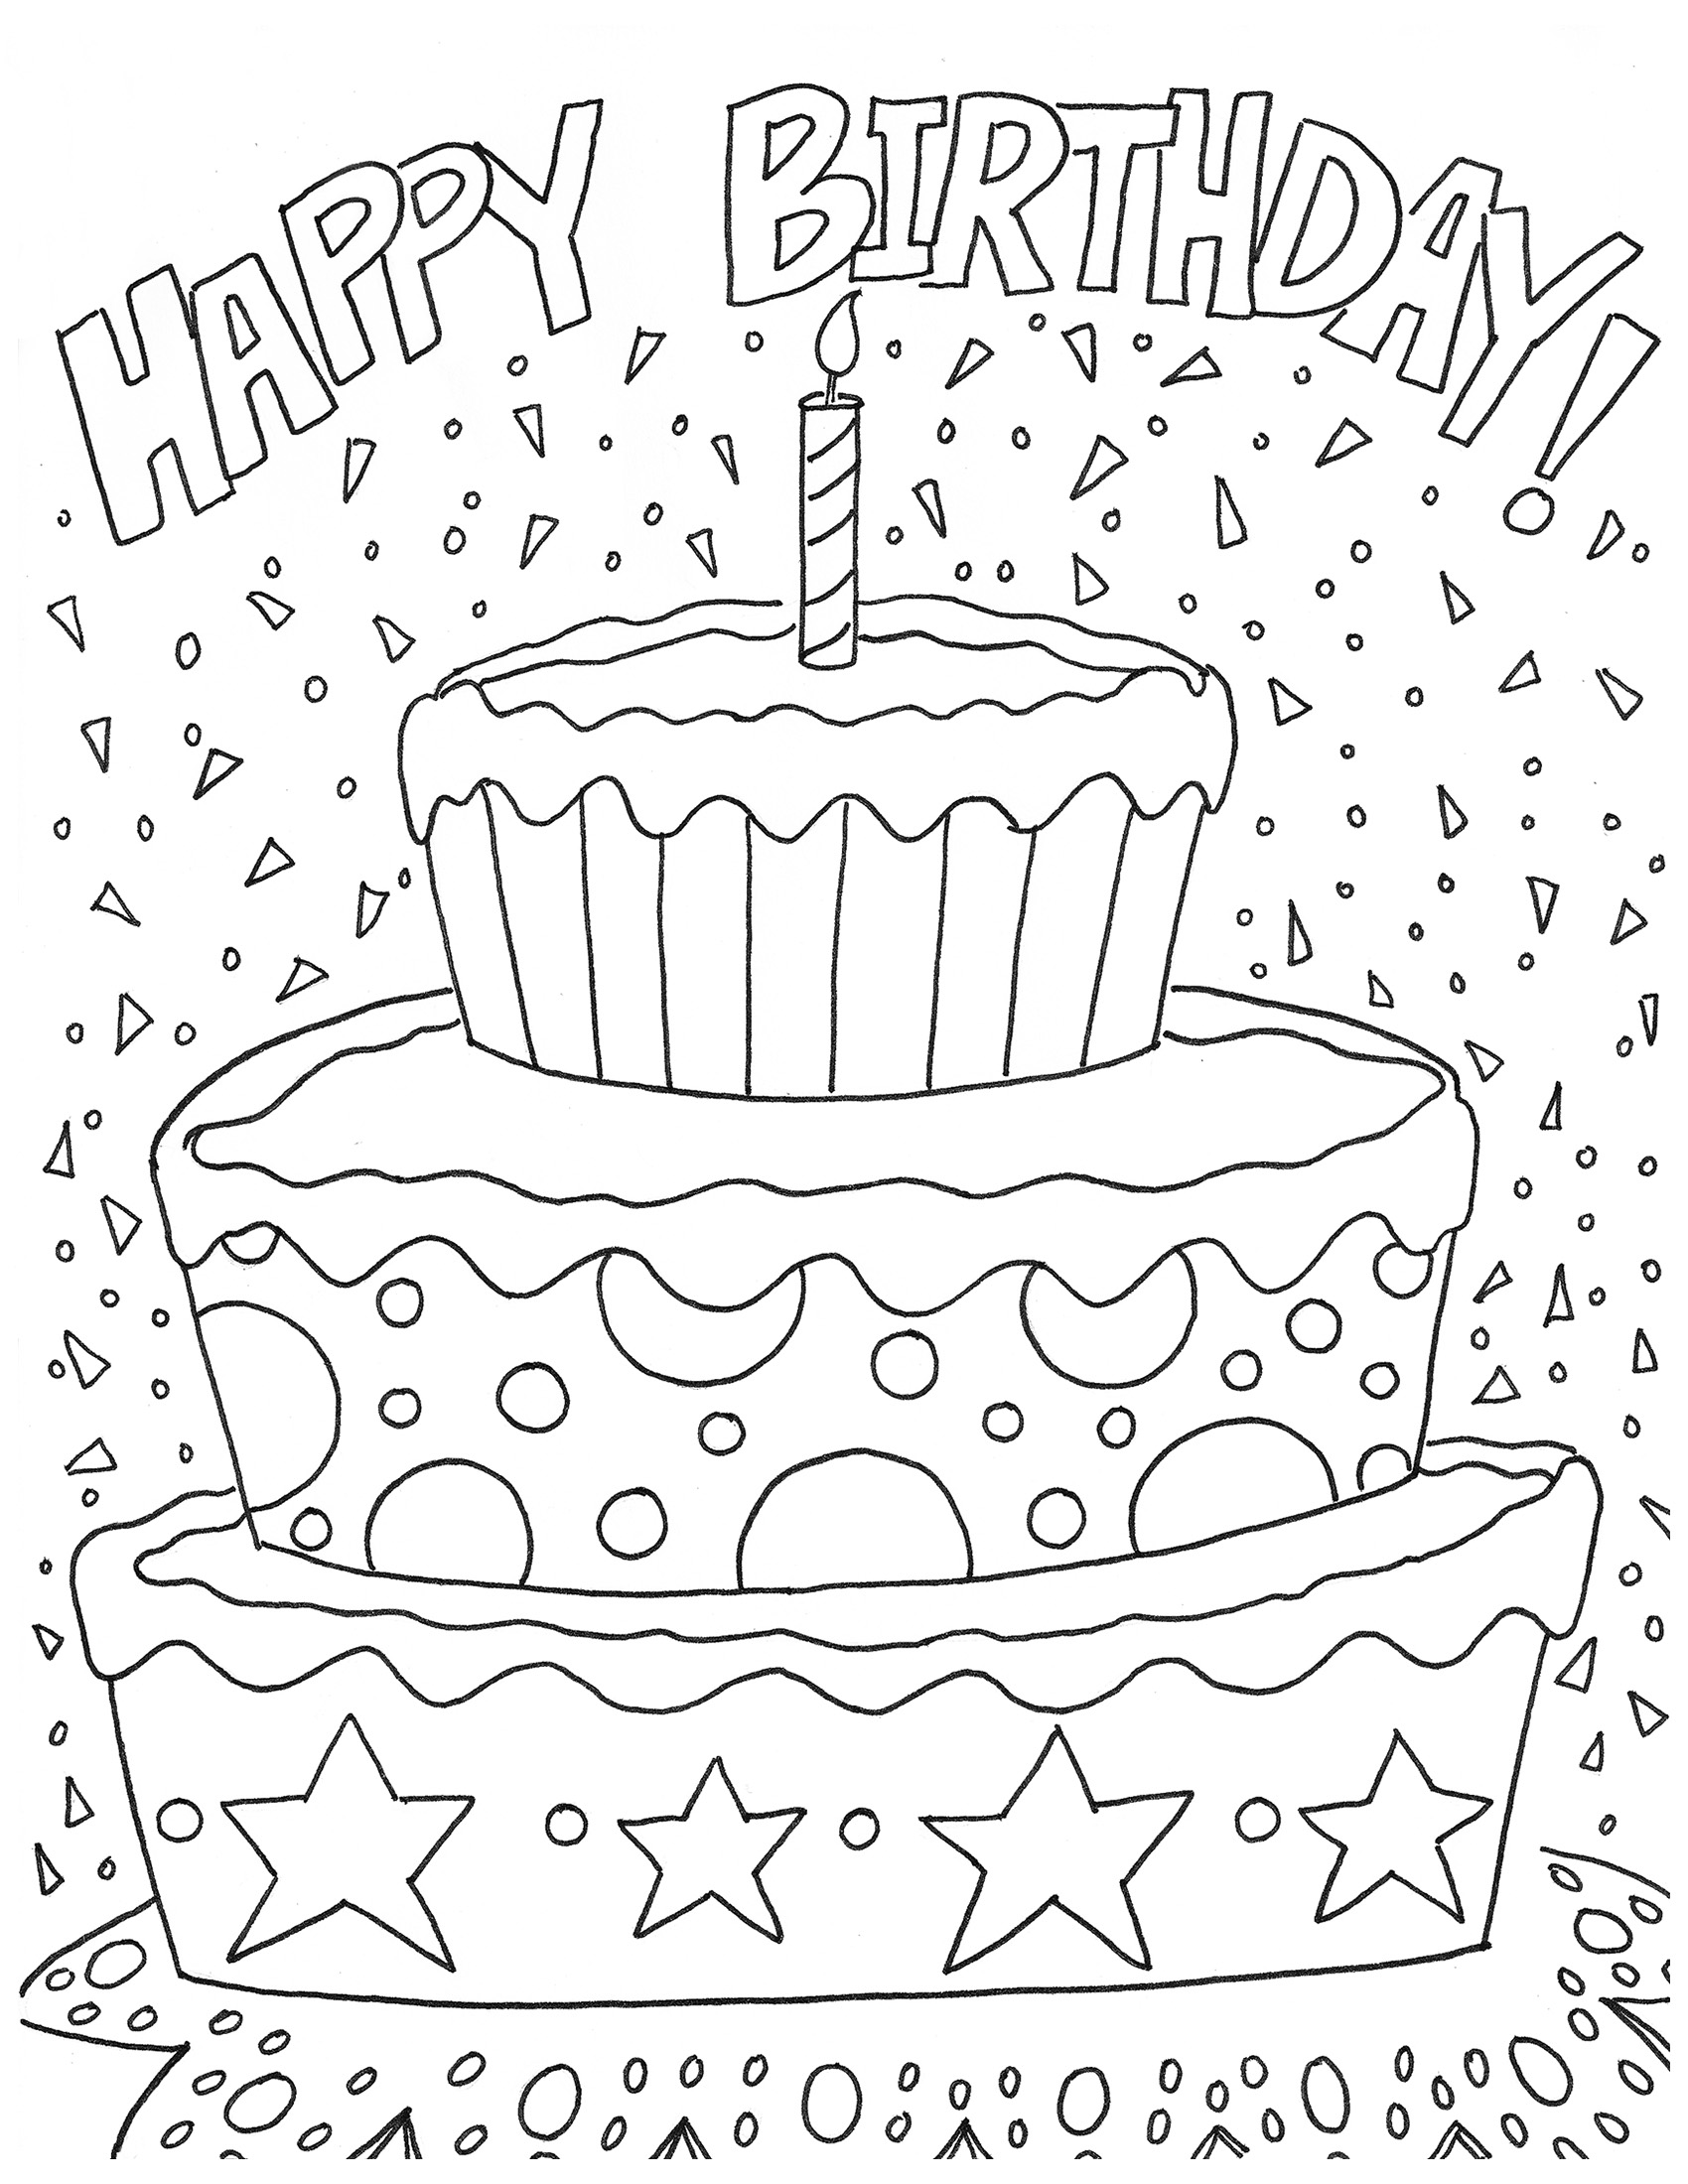 coloring pages of happy birthday - free happy birthday coloring page and hershey